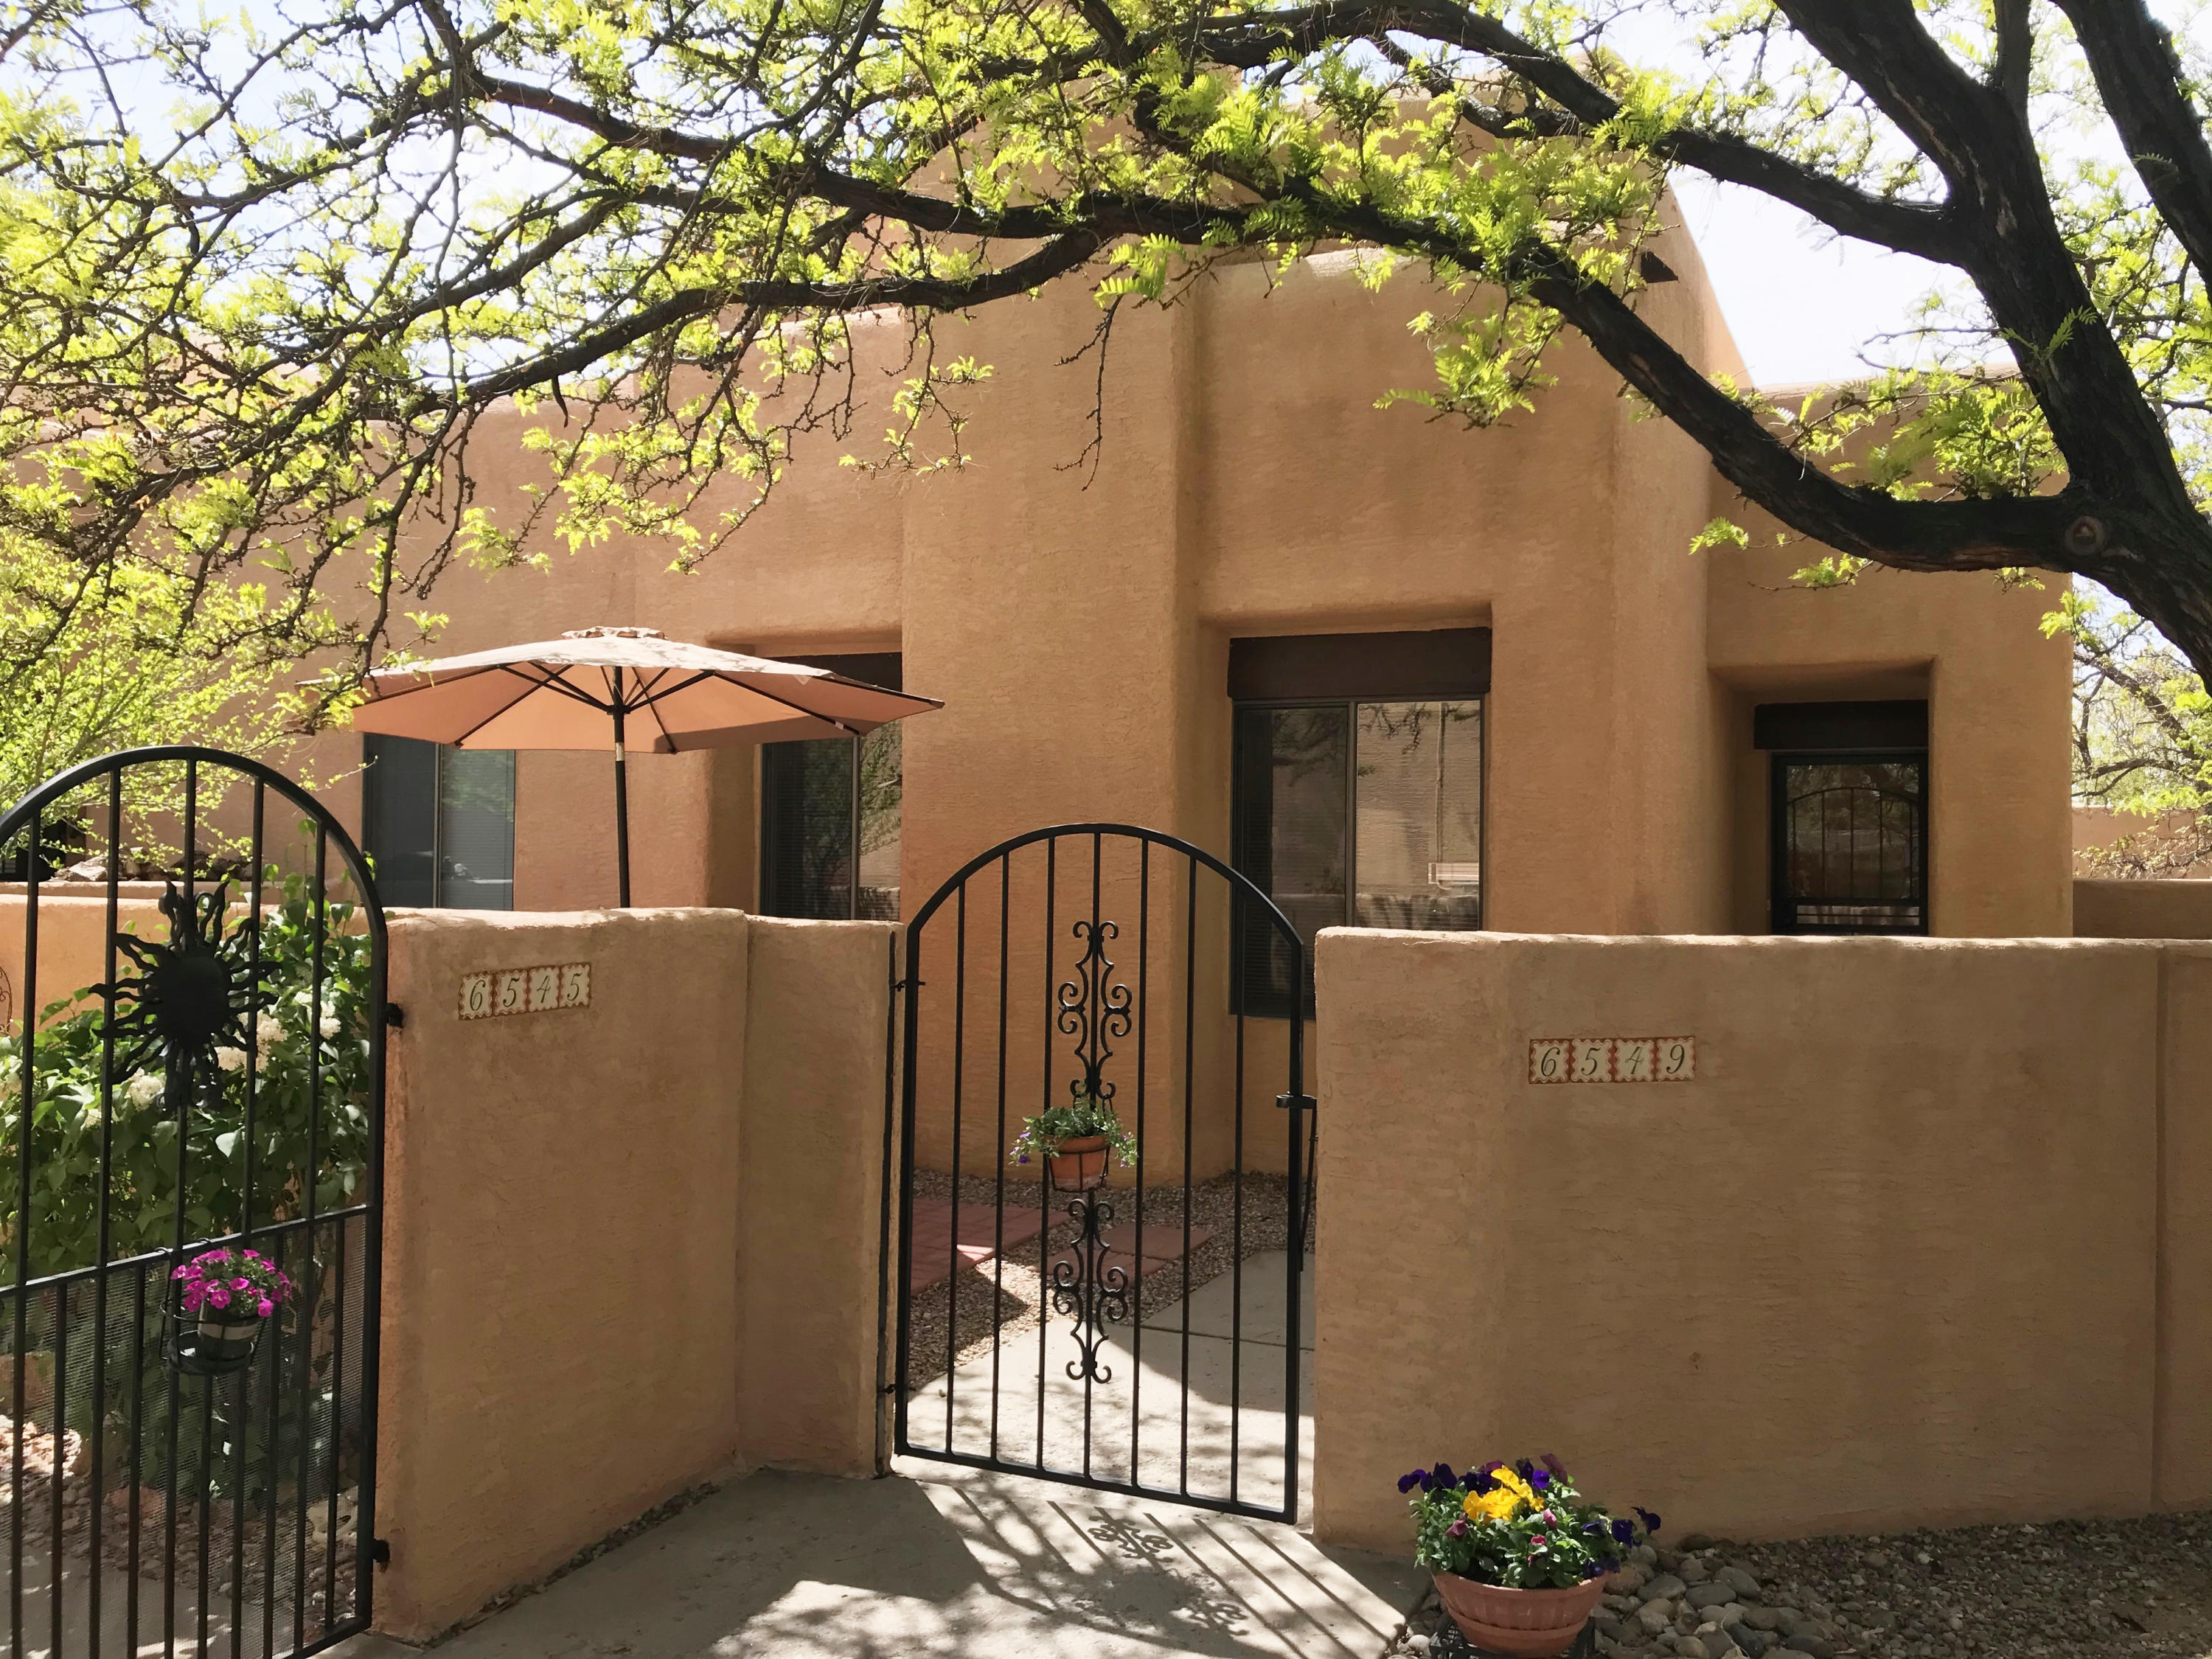 Fabulous quiet location within El Paseo away from Academy and Eubank and situated in a private nook away from the street.  Delightful courtyard entry with sitting area.  Trees in common area adjacent to property provide shade. High ceilings in living & dining areas which open to one another.  Tile in entry, hall, kitchen and bathroom. New refrigerated a/c and furnace in 2019. New stucco in 2020. New garage door in 2020. Washer, dryer, refrigerator, 3 umbrellas, rain barrel and outside furniture stay.  Private inviting backyard with 3 sitting areas that backs to landscaped common area. HOA includes stucco, garage roof, common area, club house and swimming pool ($230 monthly). Ecobee heating/cooling system. Walking distance to shopping, bus routes, restaurants & Academy Hills Park.